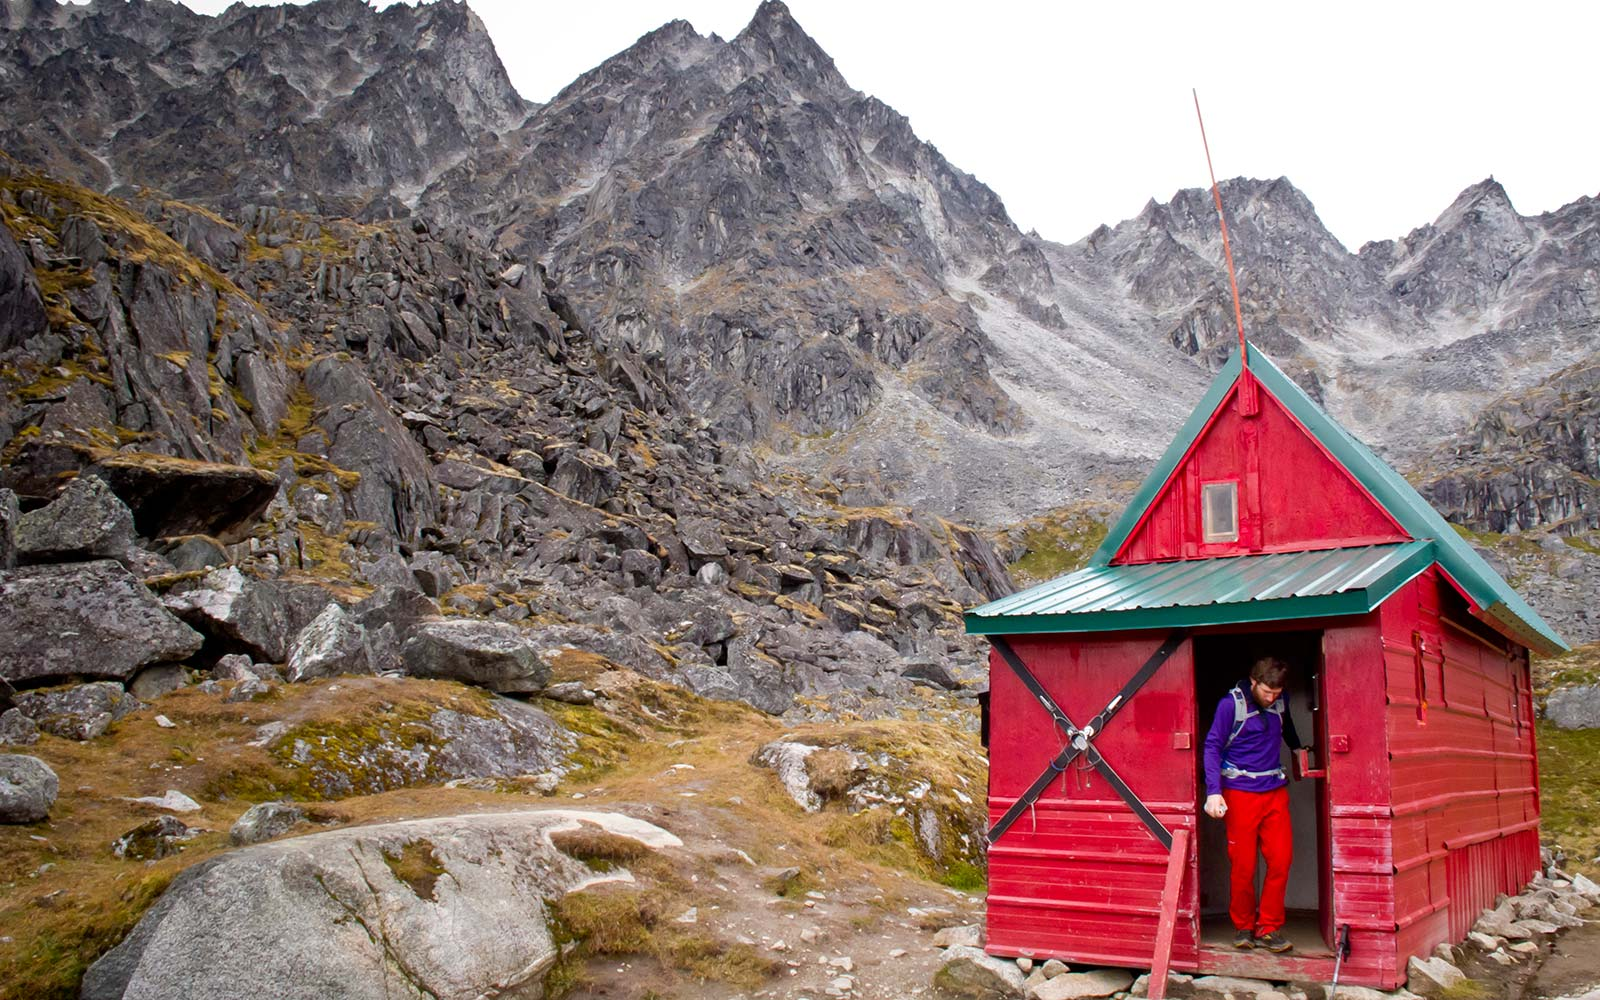 You can stay in this cabin in Alaska for free